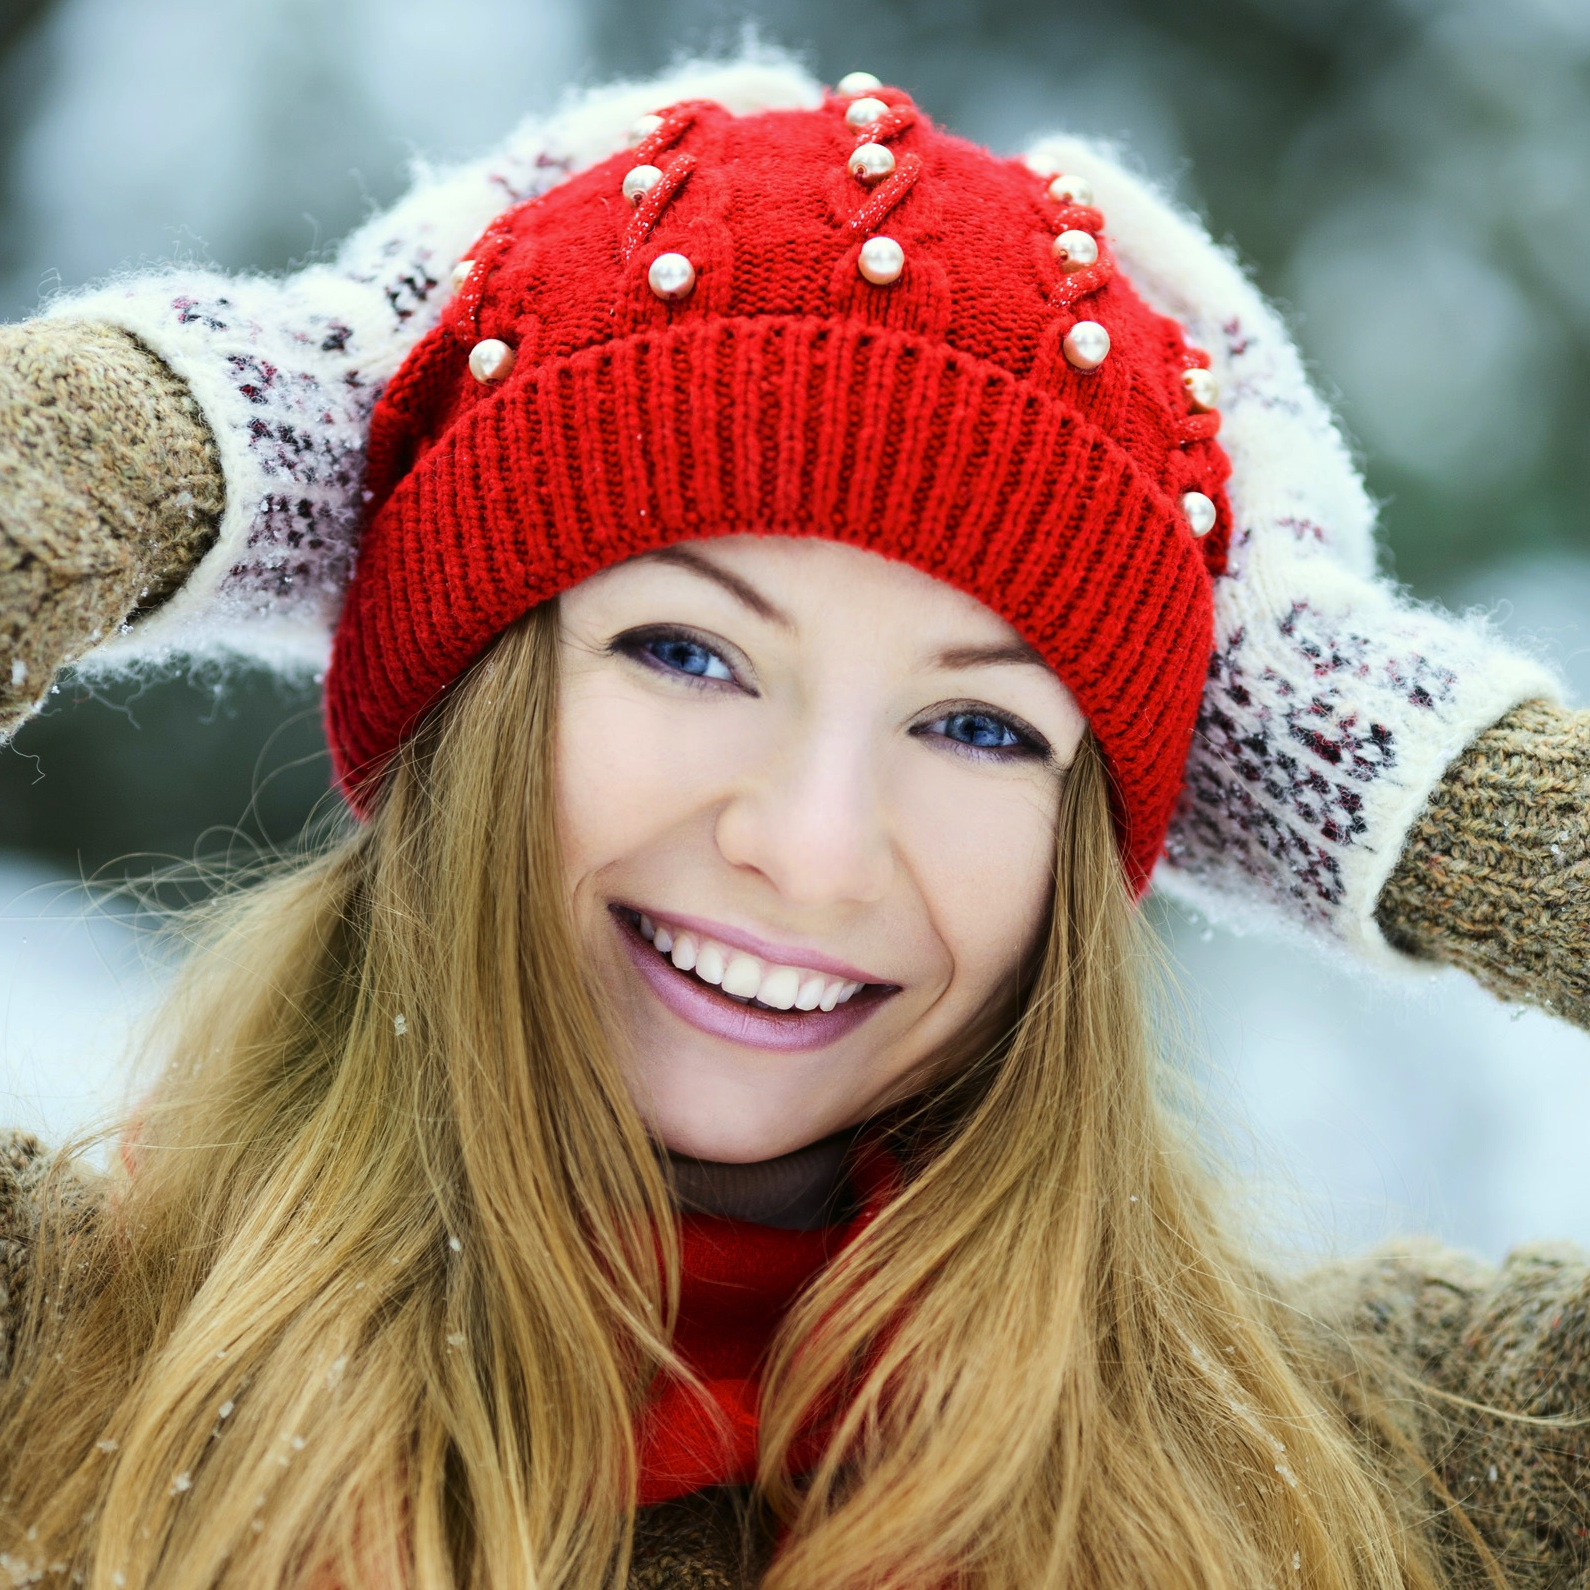 10 Ways to Beat the Winter Beauty Blues